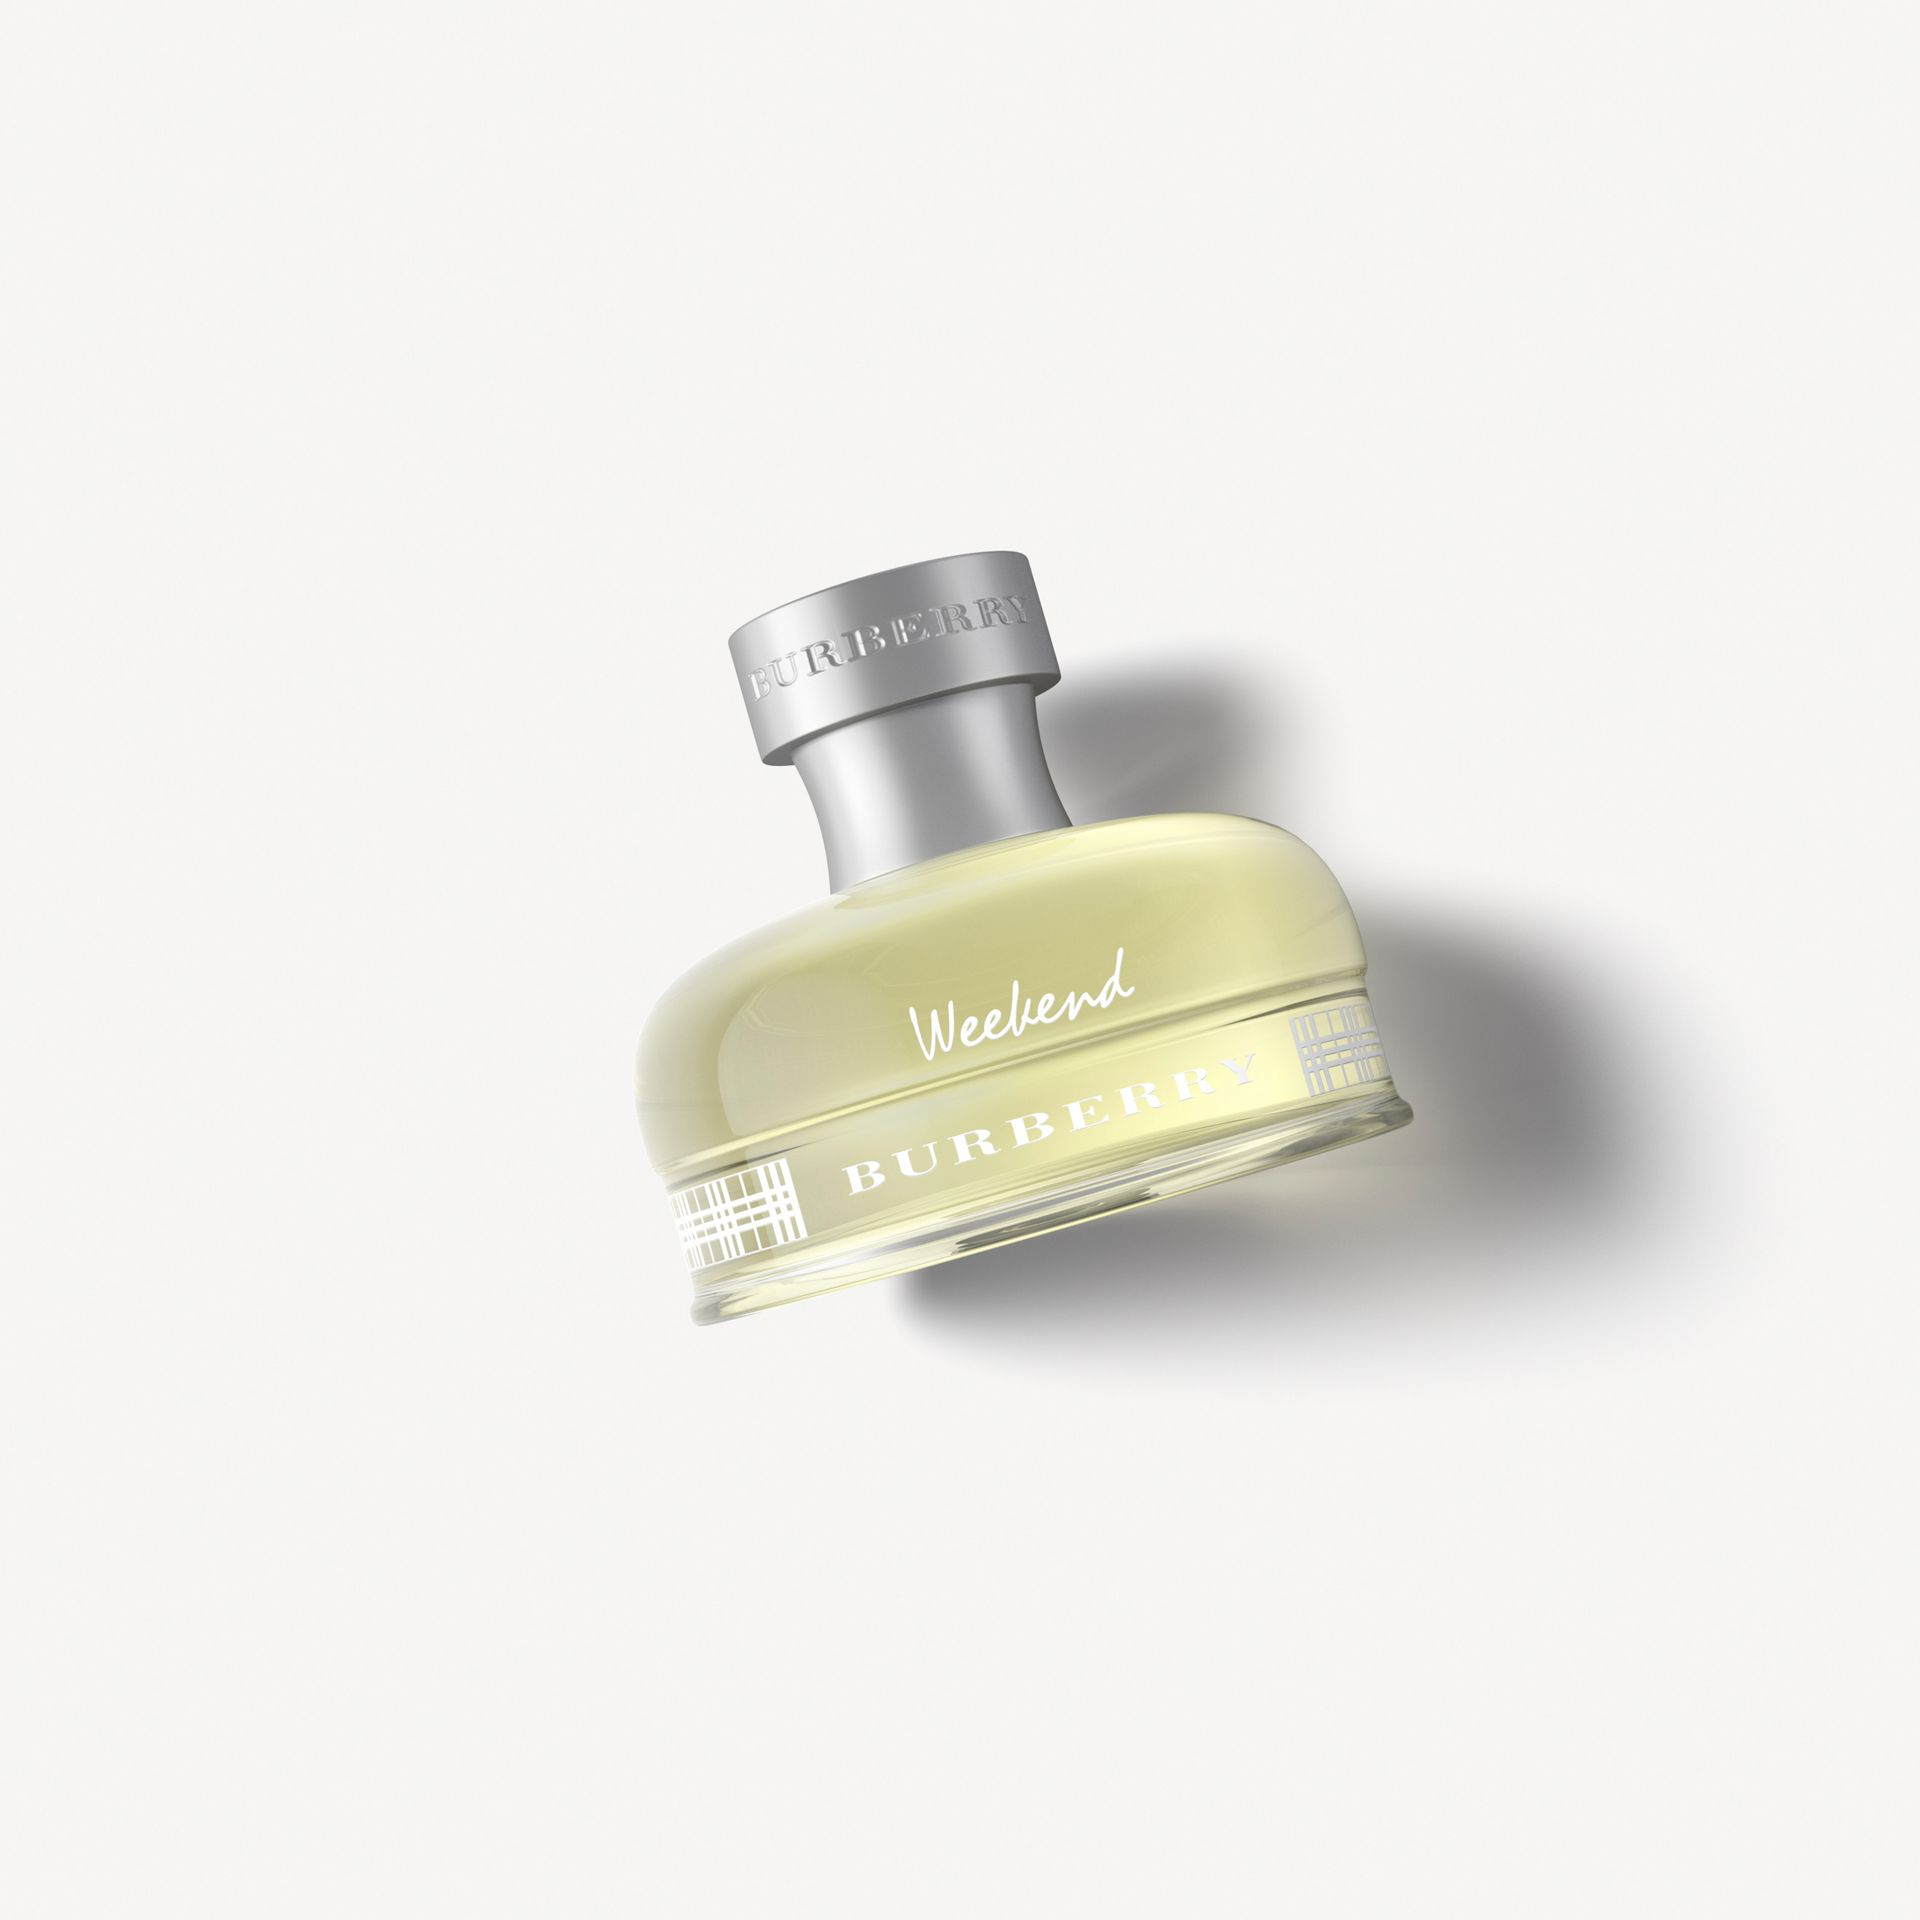 Burberry Weekend Eau de Parfum 50ml - Women | Burberry Australia - gallery image 0